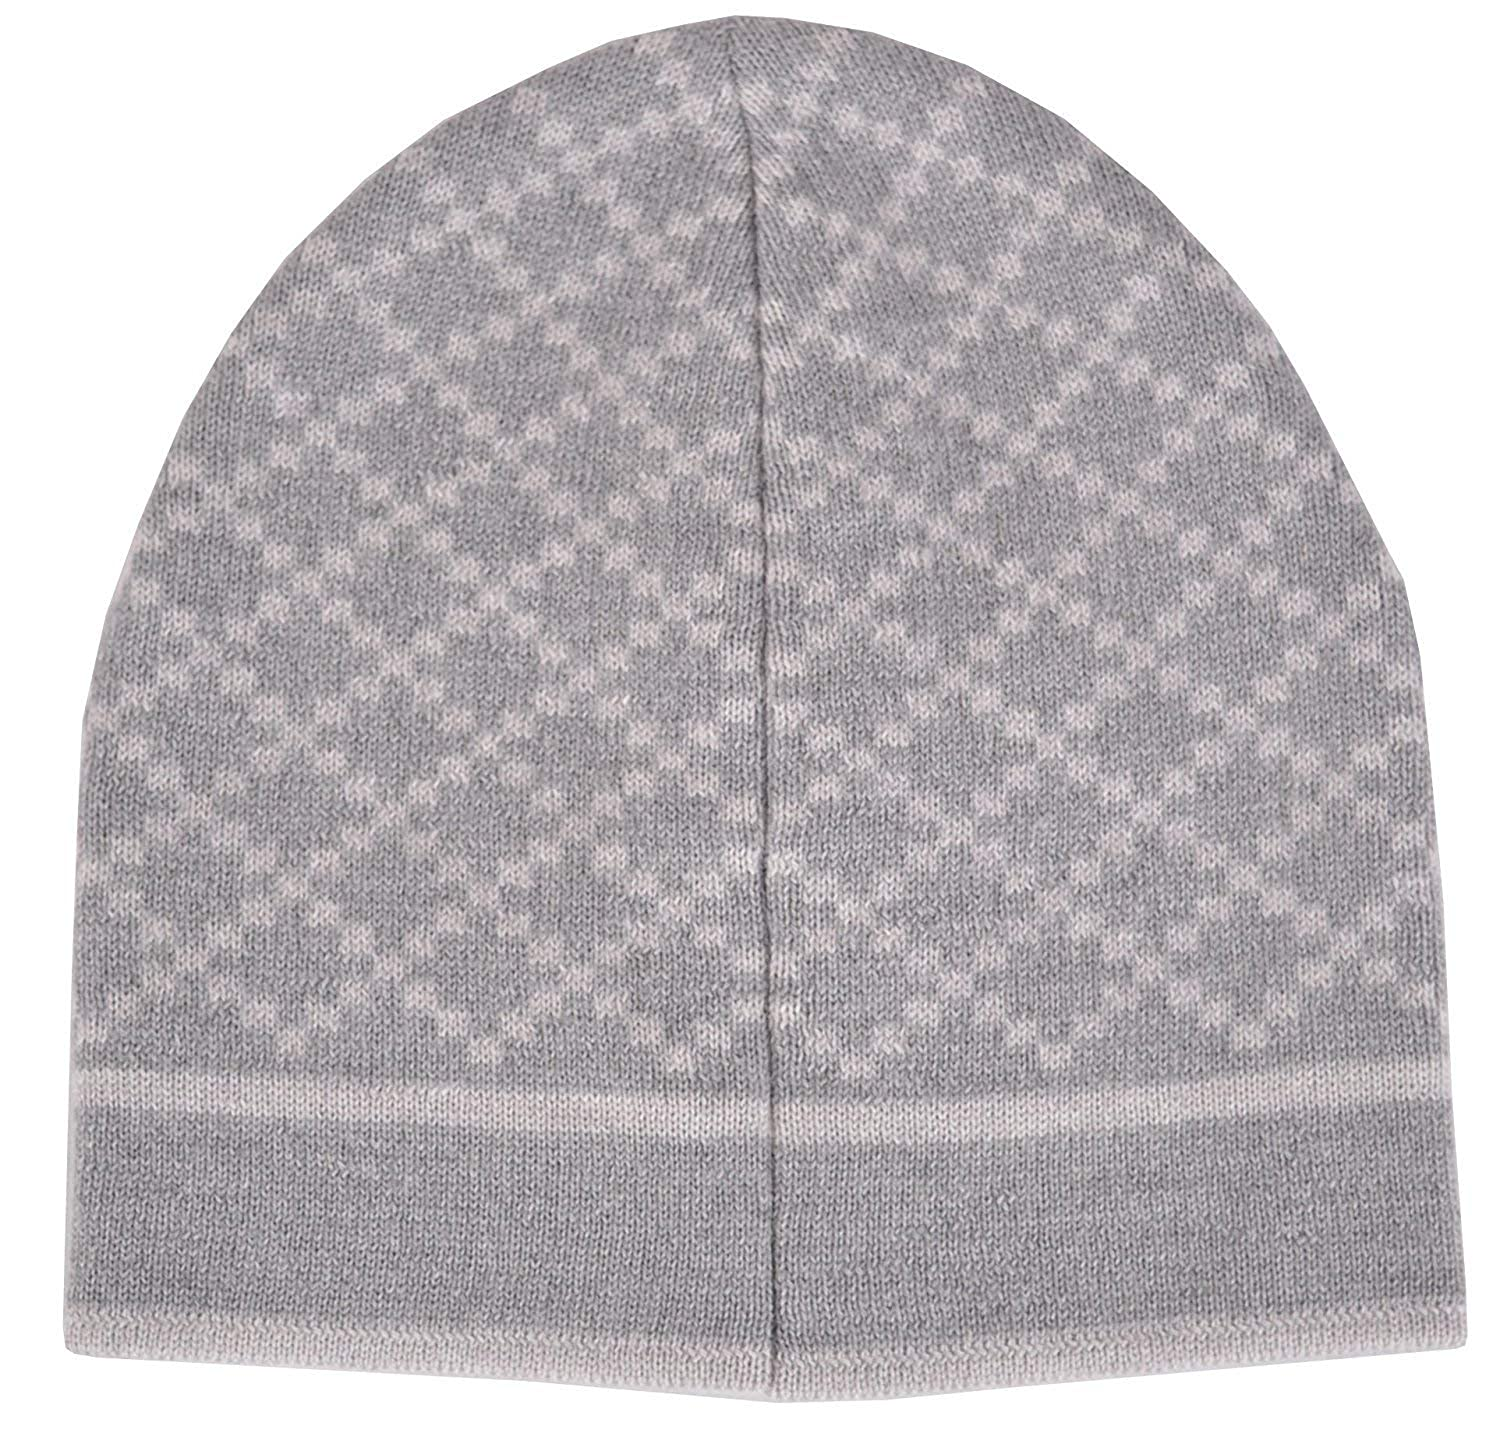 3b510959c1f Amazon.com  Gucci Unisex Beige Wool Diamante Beanie Hat 281600 9878   Clothing